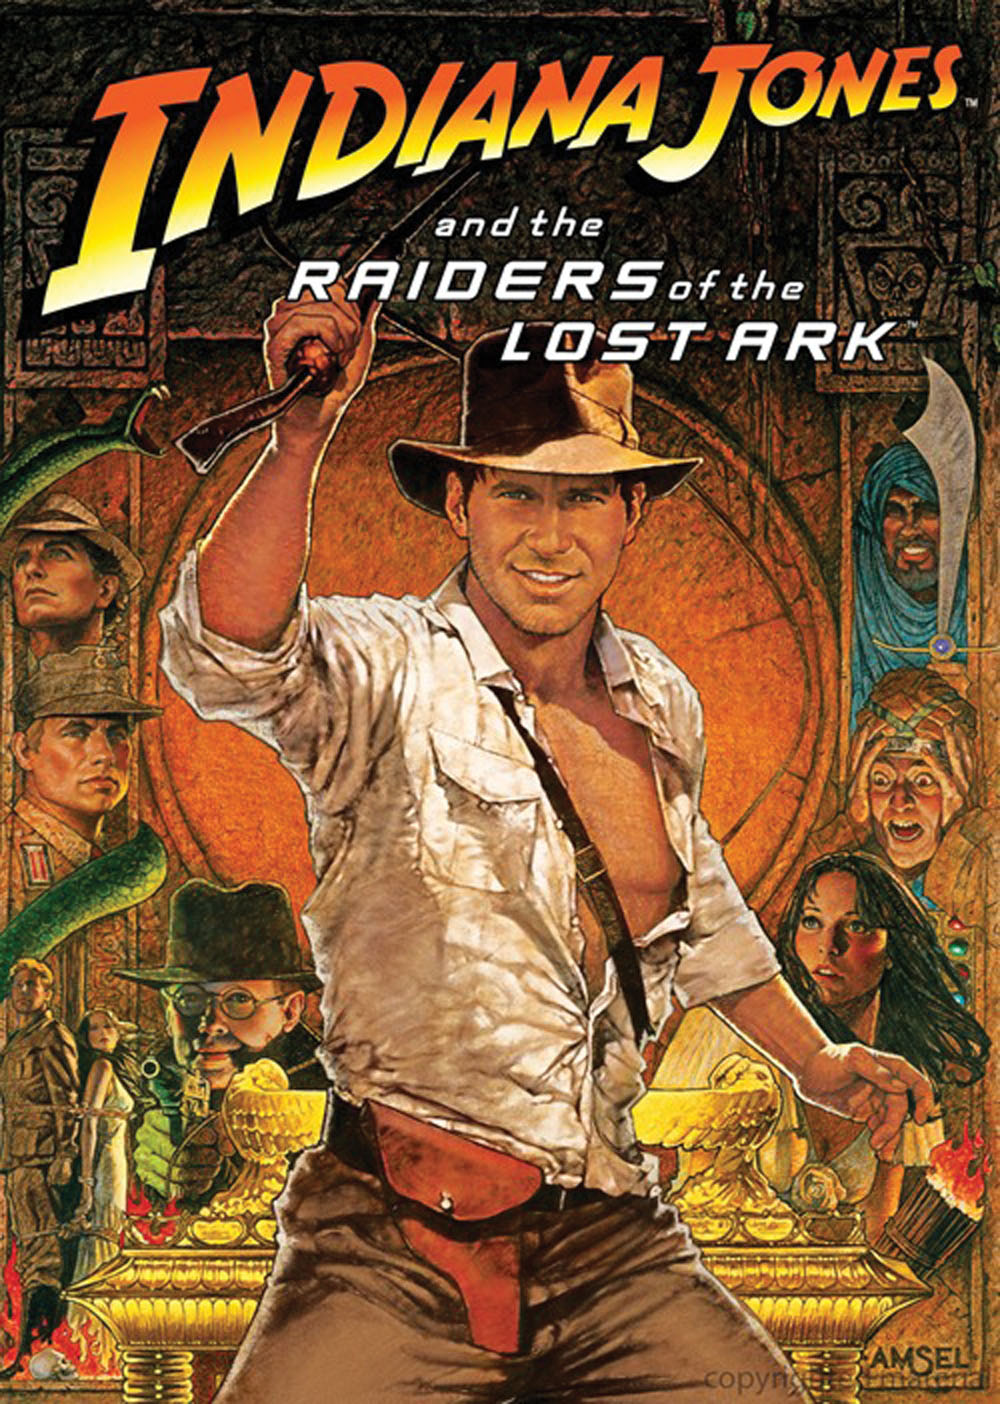 http://www.mygeekconfessions.com/wp-content/uploads/2012/09/Raiders-of-the-Lost-Ark-Movie-Poster.jpg